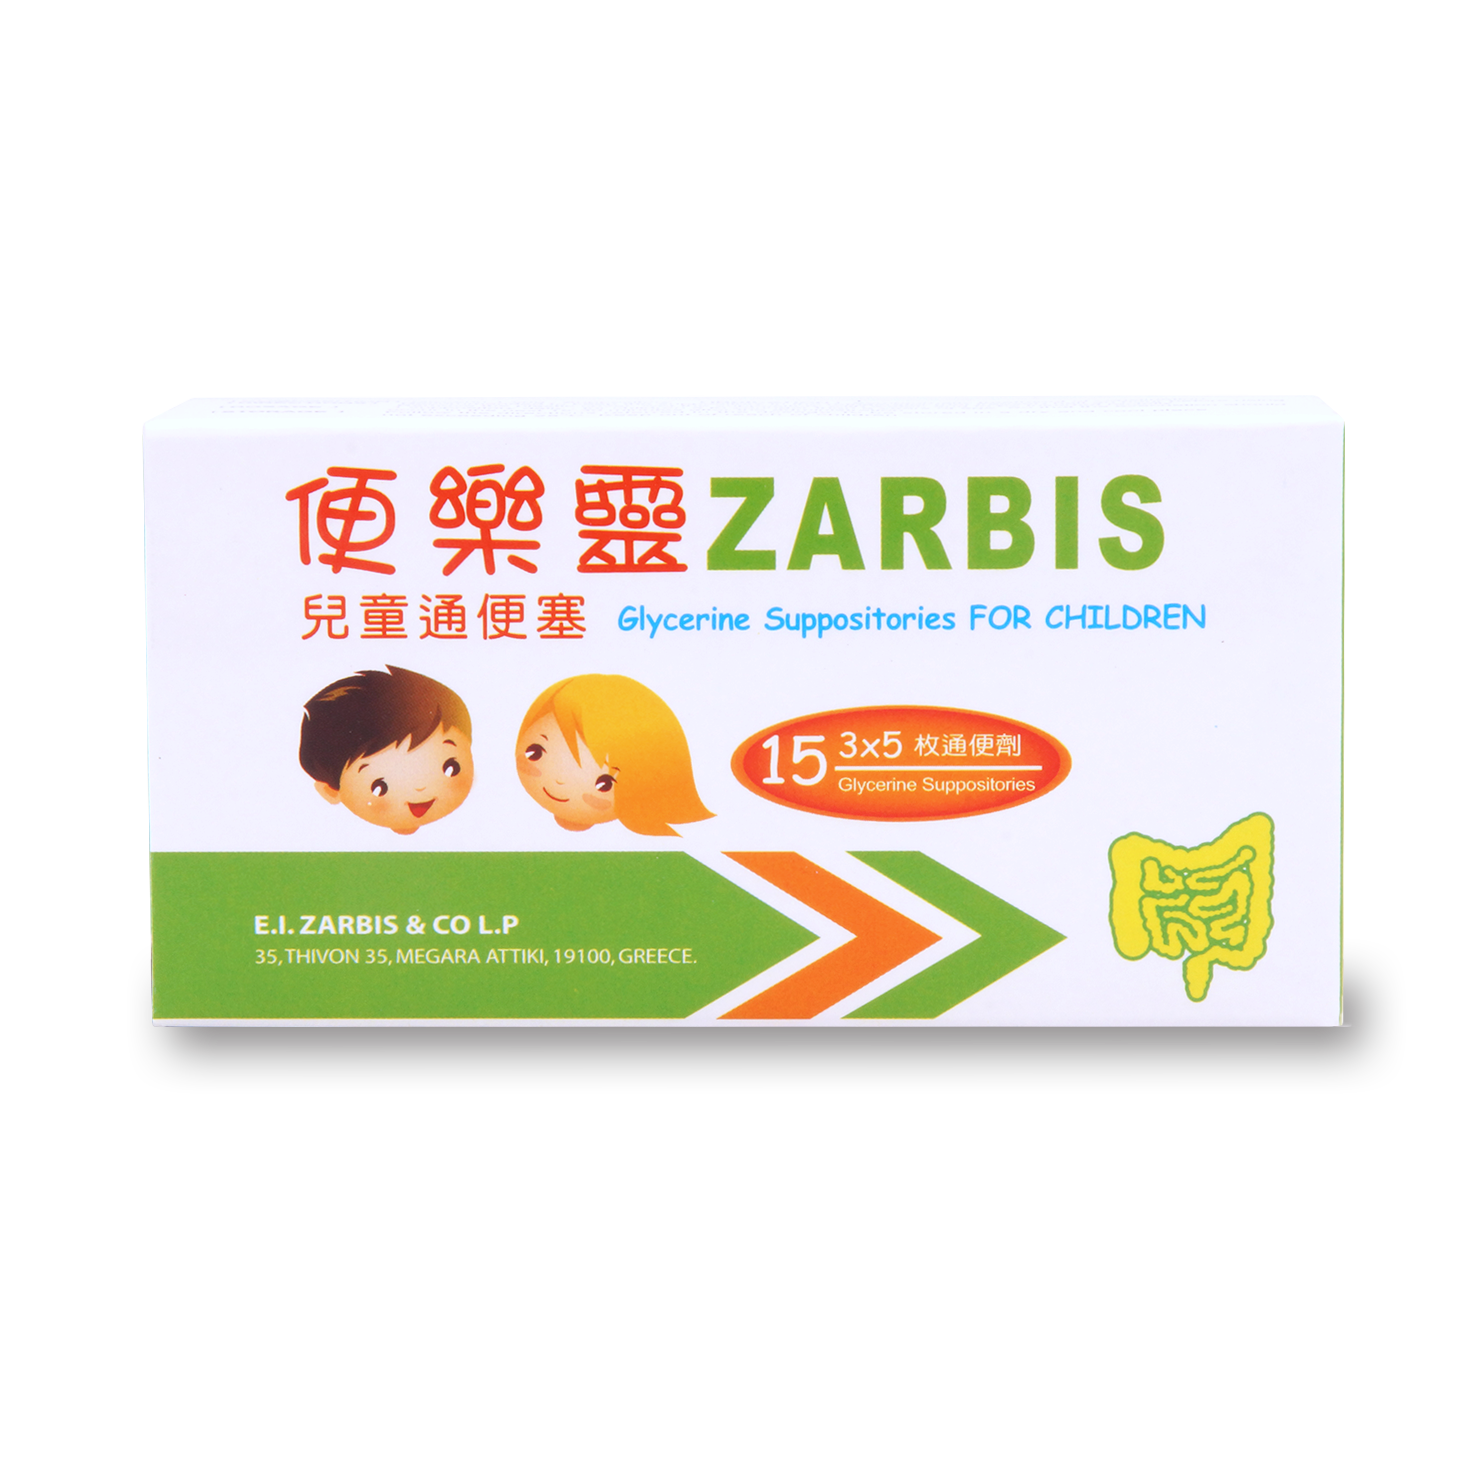 ZARBIS GLYCERIN SUPPOSITORIES - CHILDREN